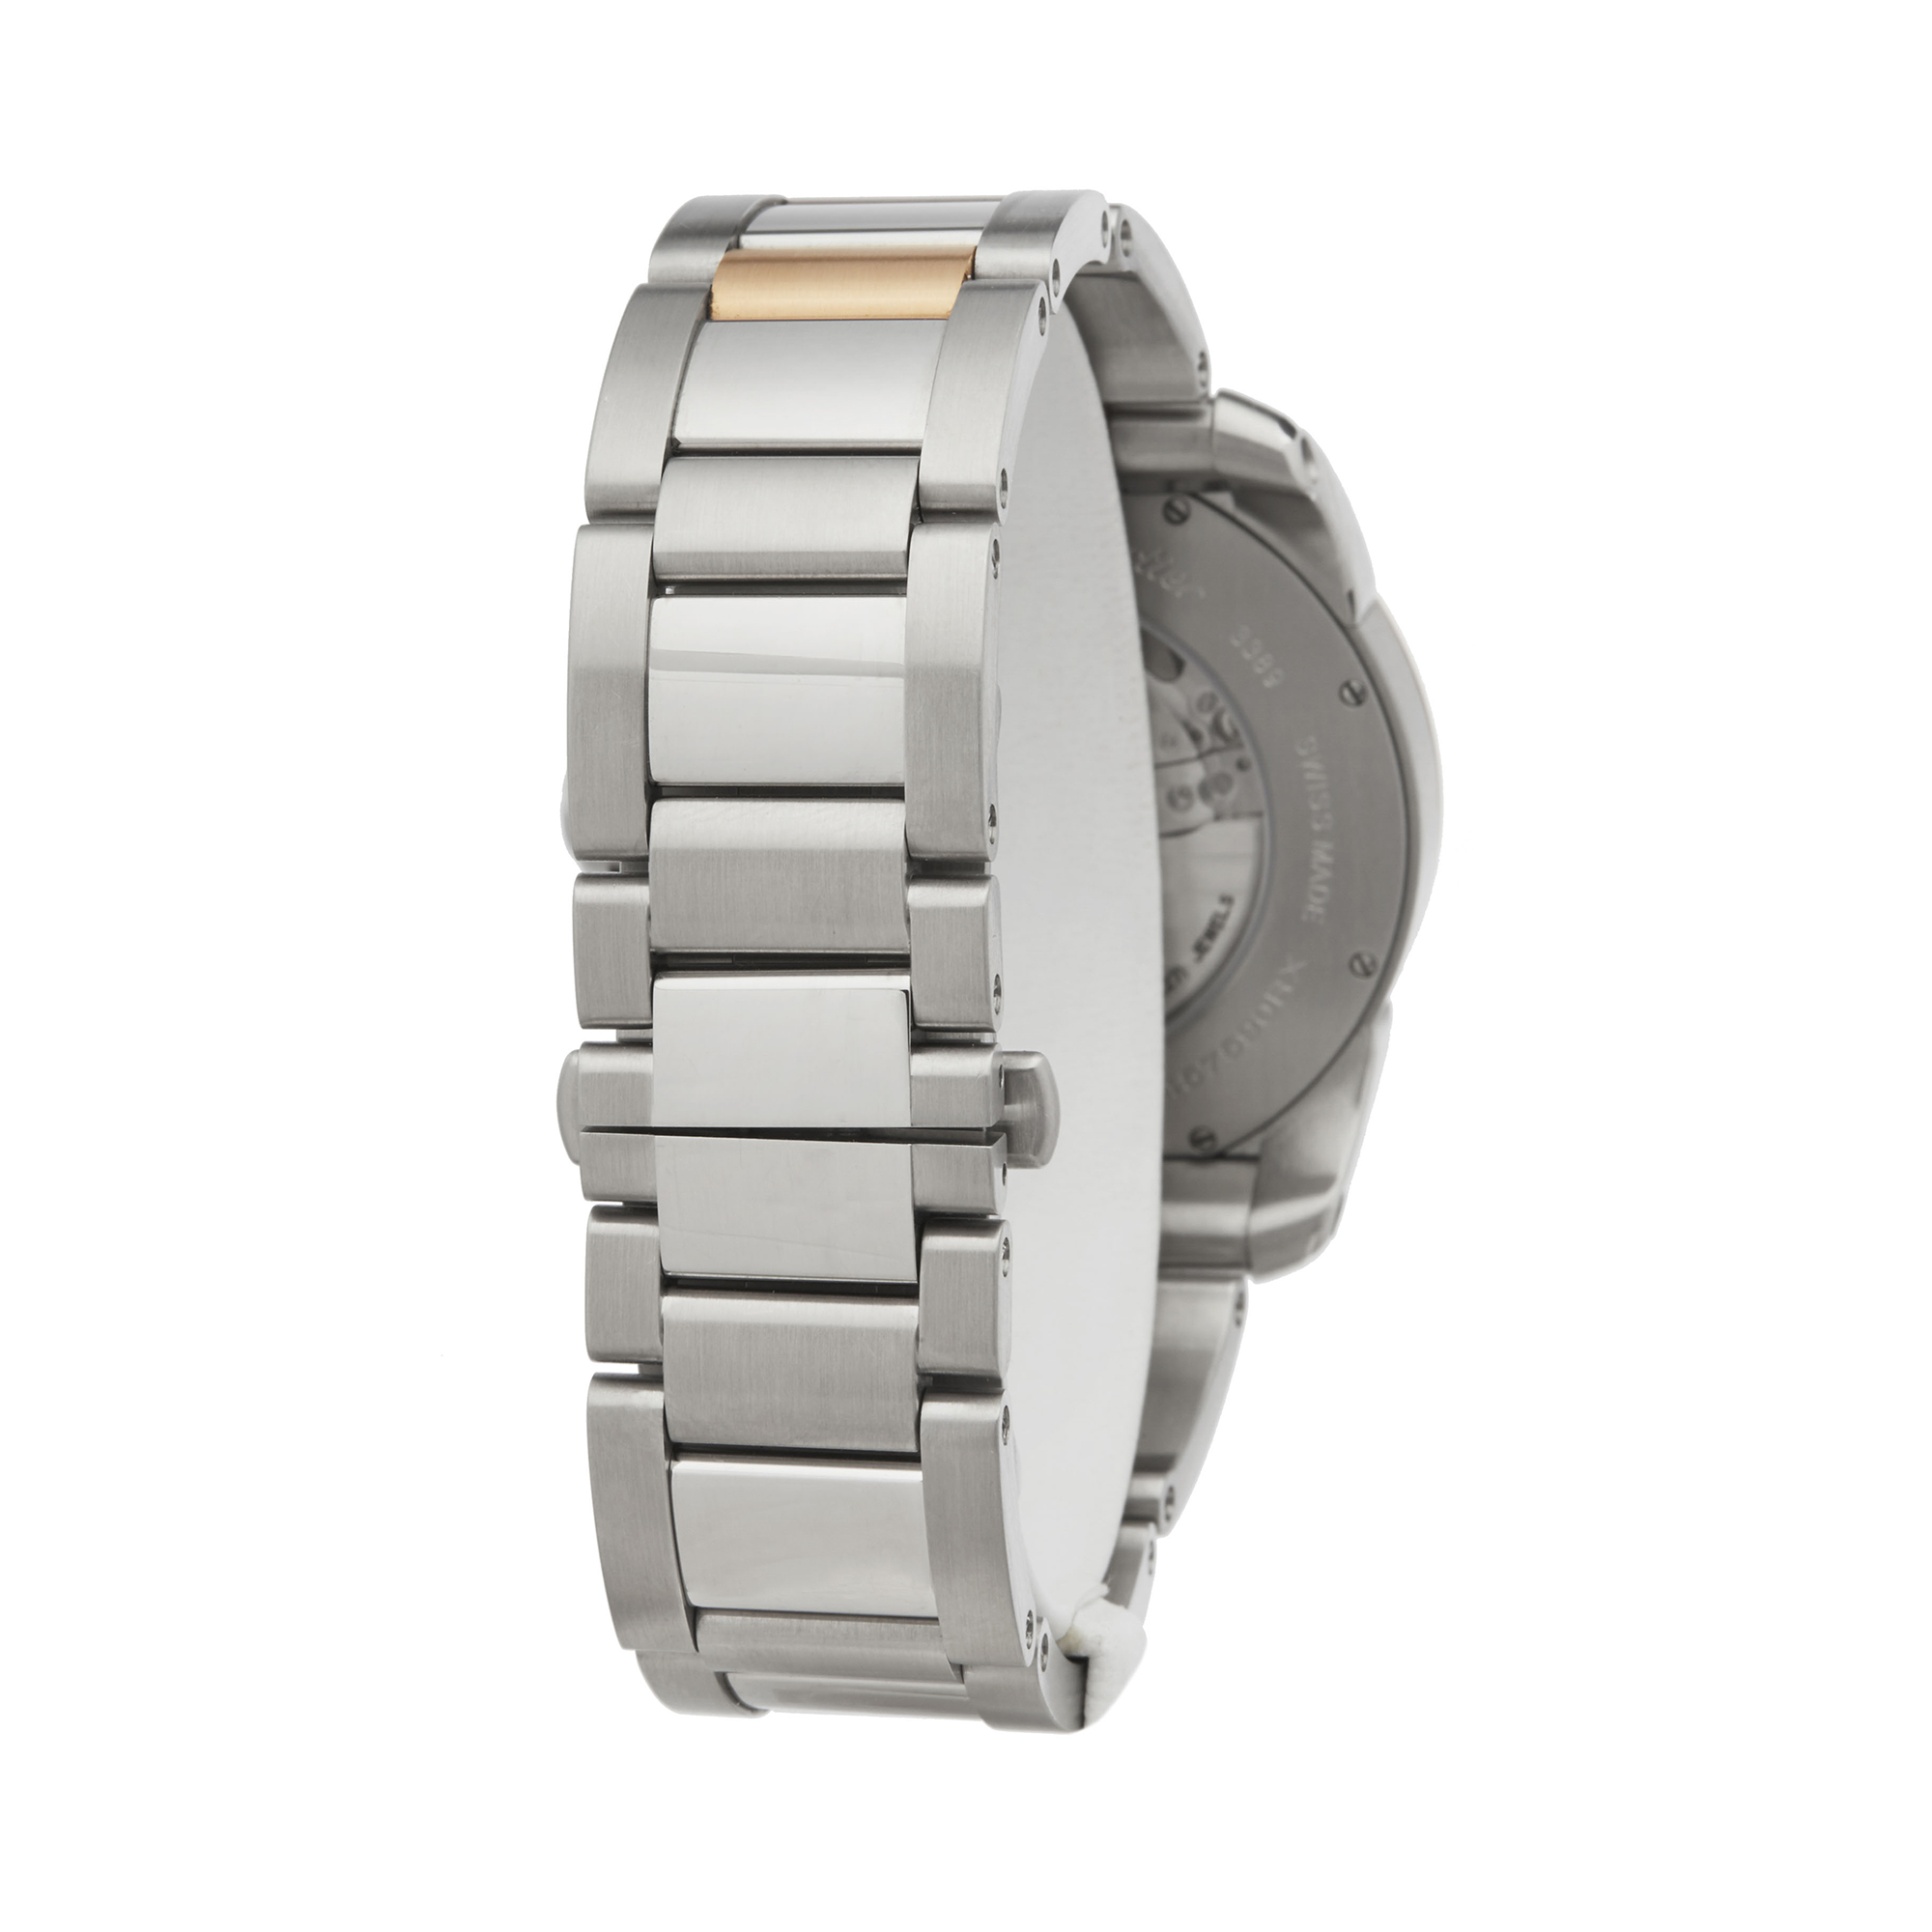 Cartier Calibre W7100036 or 3389 Men Stainless Steel & Rose Gold Watch - Image 5 of 8